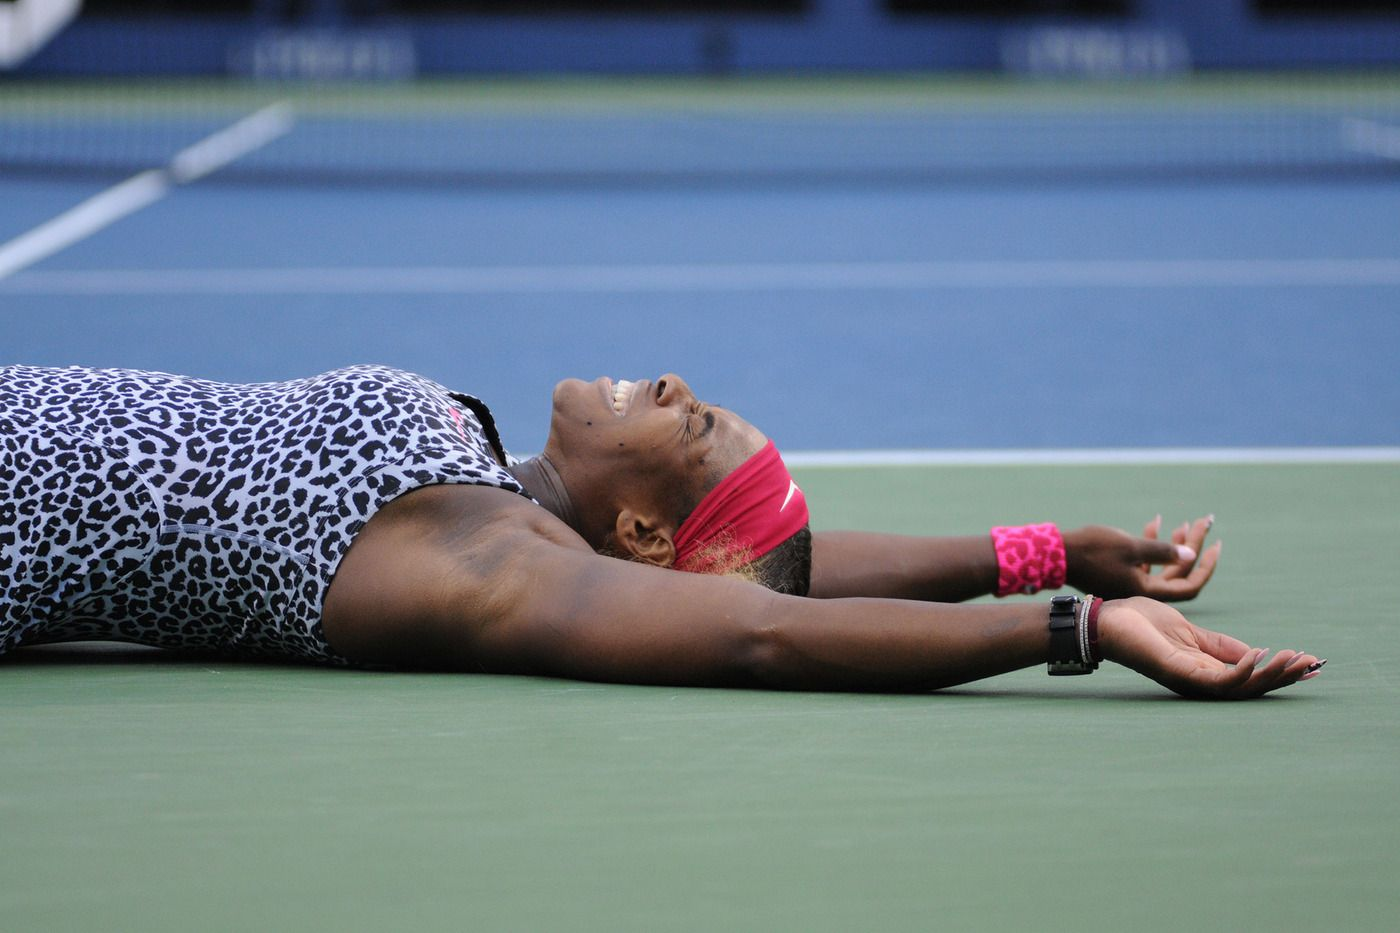 Serena takes it all: 2-Time U.S. Open Defending Champion Serena Williams takes down tenth seed Caroline Wozniacki in straight sets to win the Women's Final 6-3, 6-3 for her 6th US Open Crown. 9/7/14